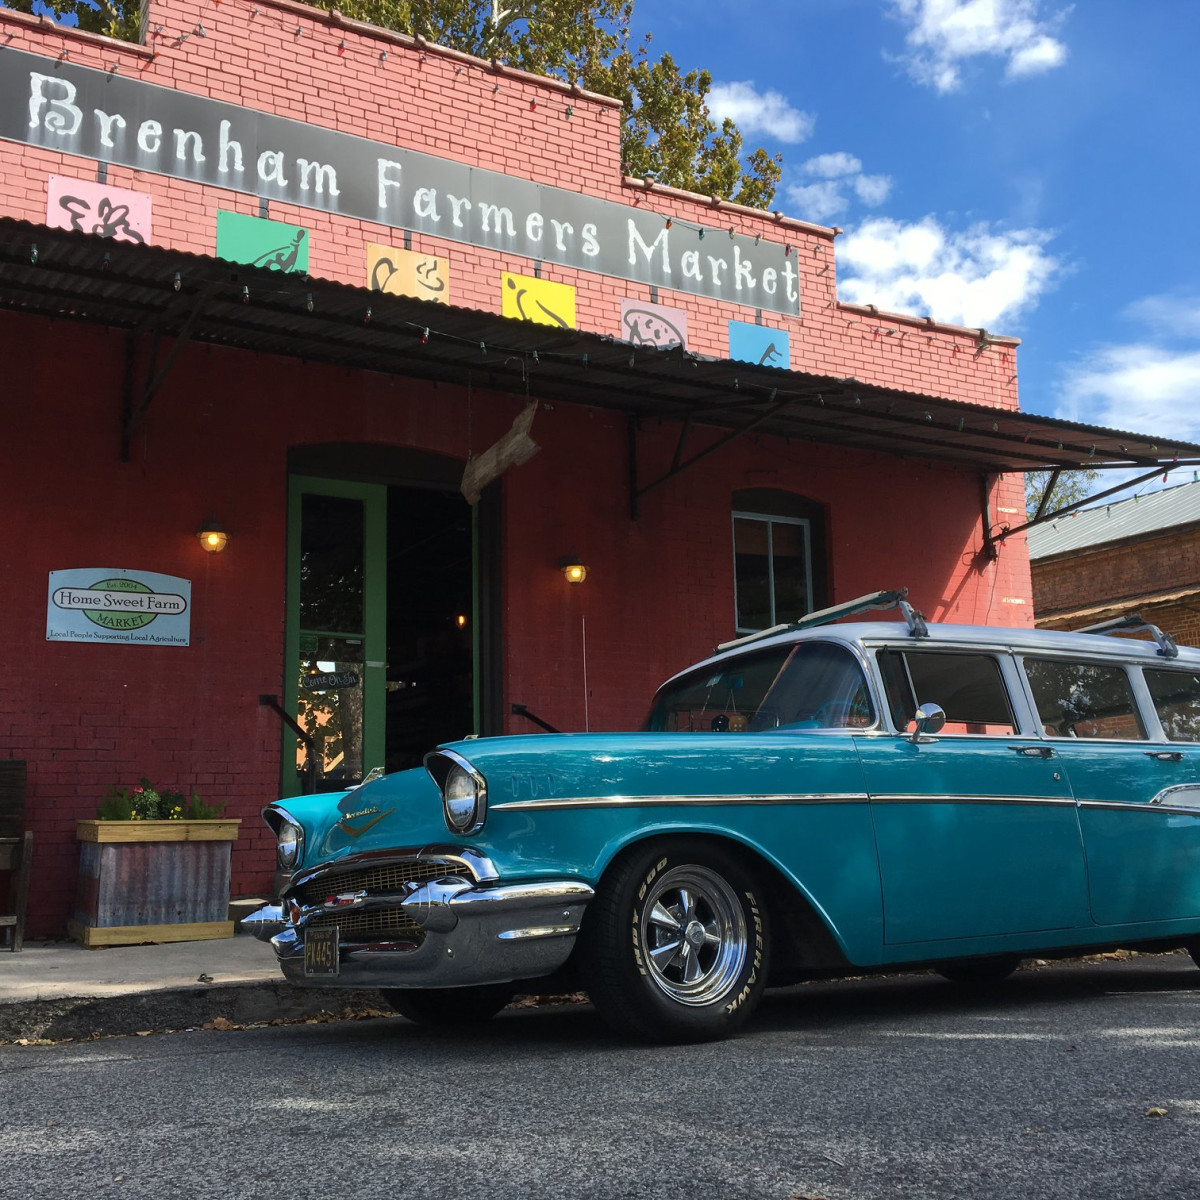 Home Sweet Farm Market and Biergarten brenham